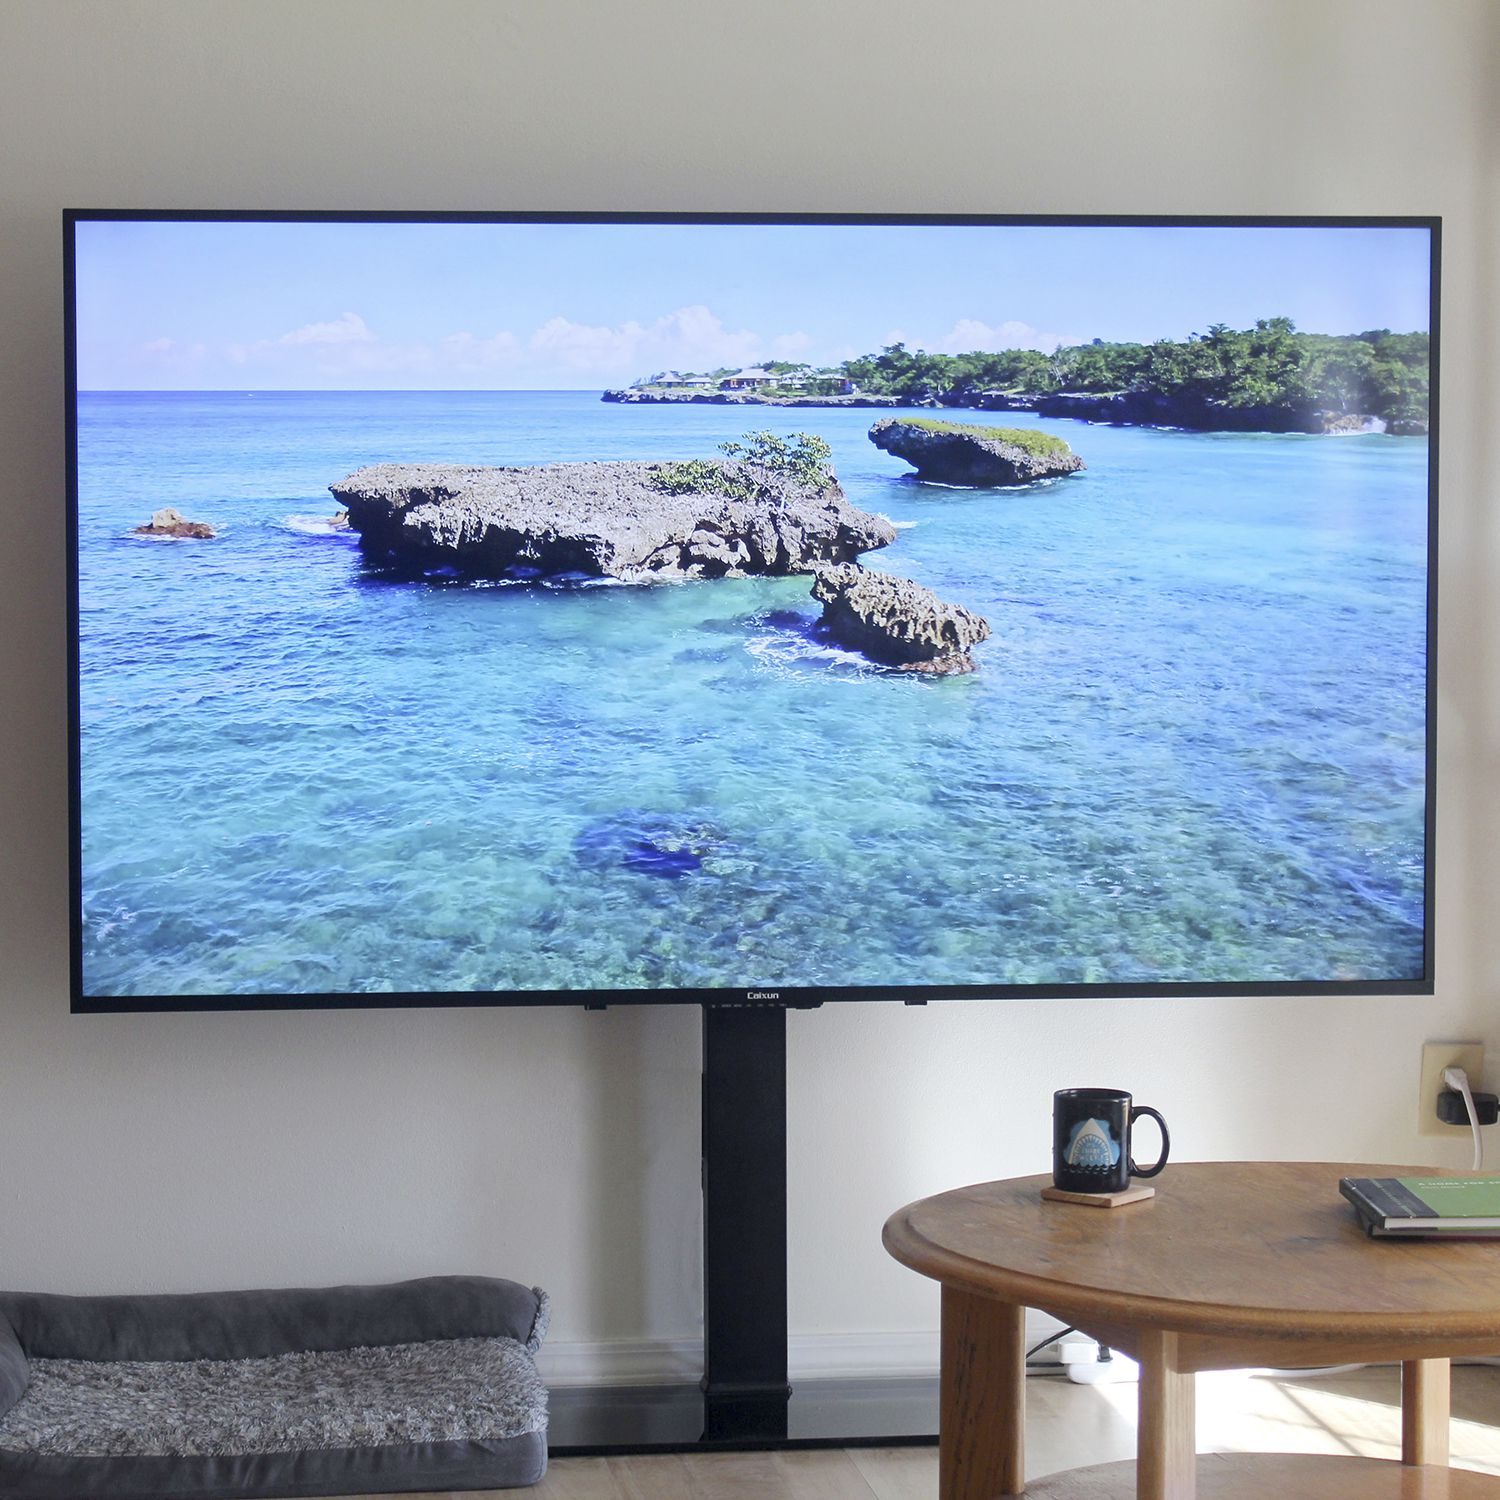 Caixun 4k Android Tv 75 Inch Review Budget Friendly Performance